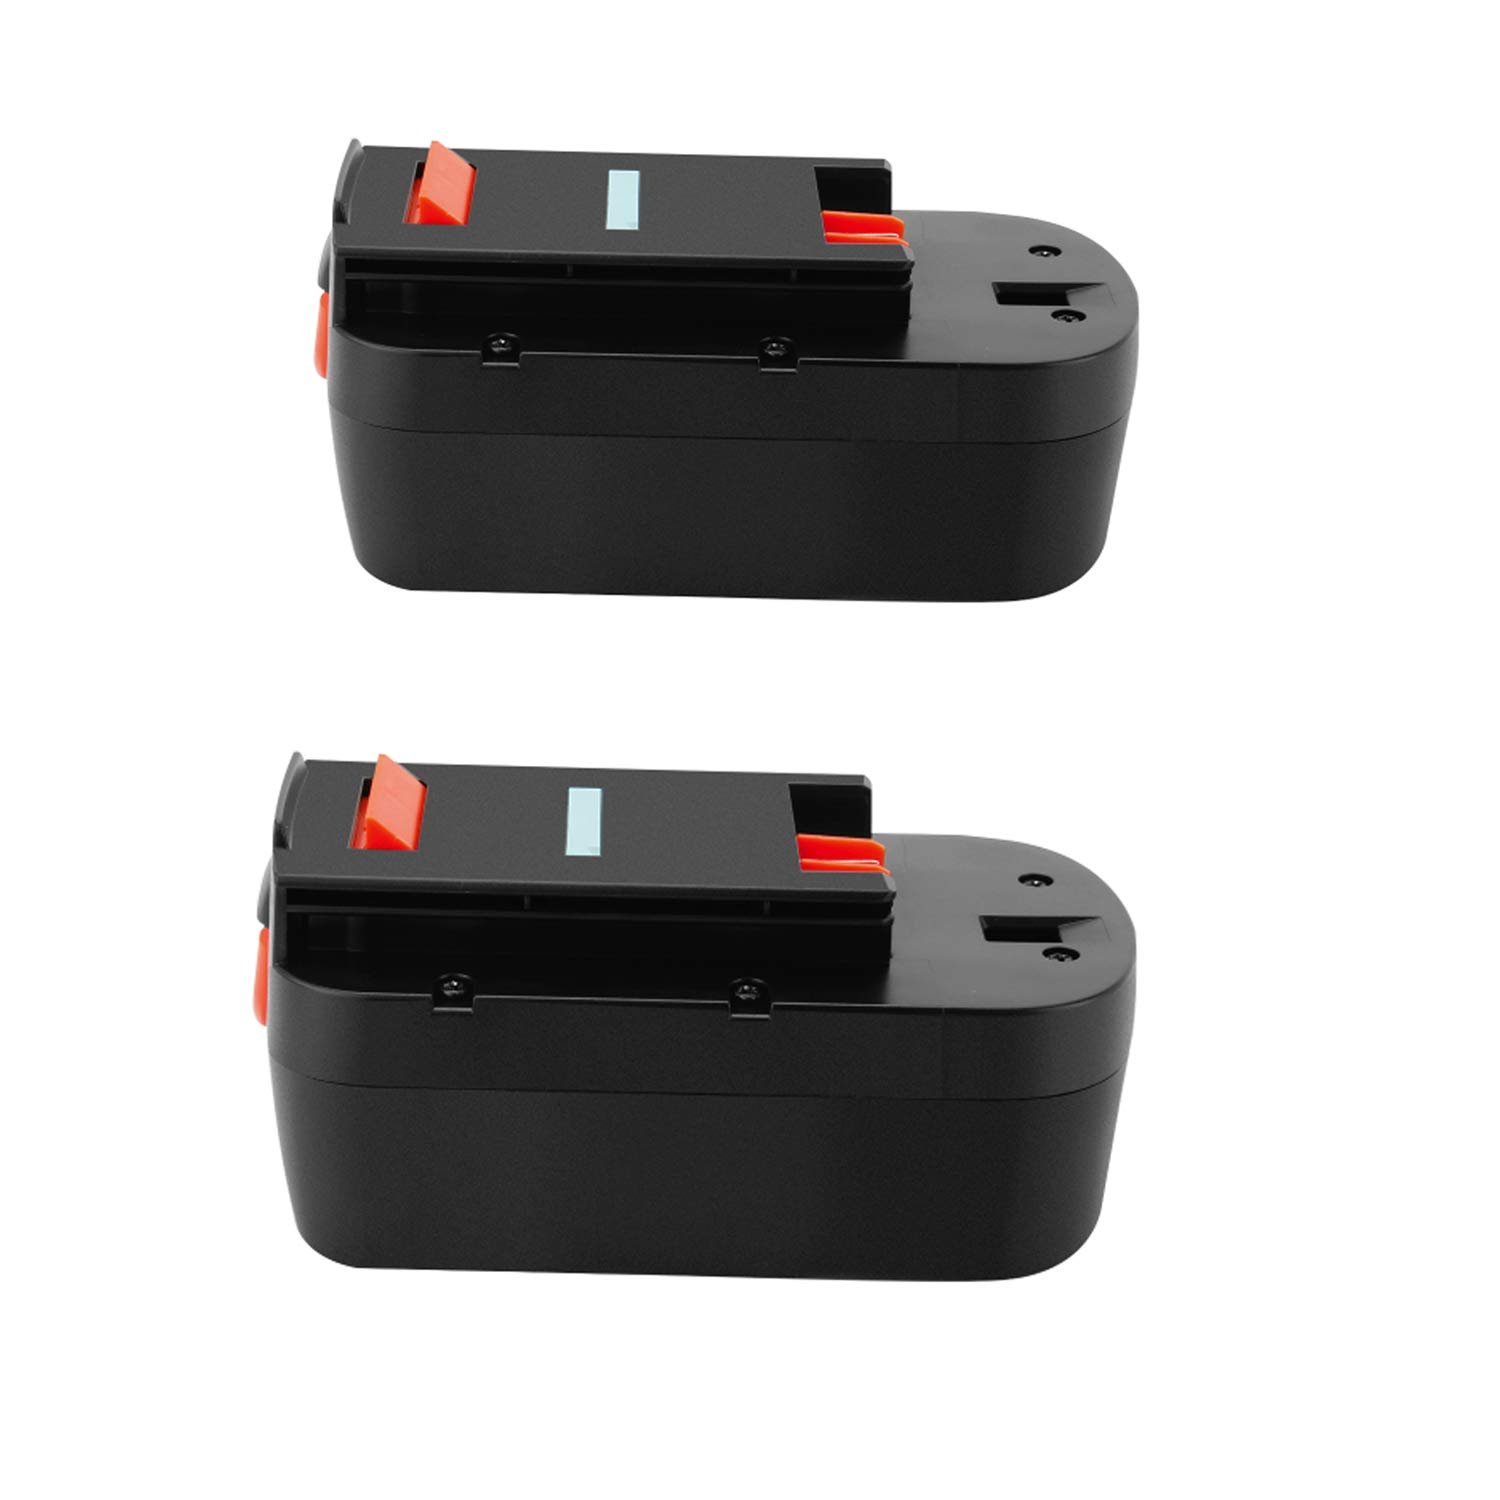 Lotive 2 Packs 18V 3.0Ah Ni-MH Replacement Battery Compatible With Black&Decker HPB18 A1718 A18NH HPB18-OPE A18 Firestorm A18 FS18BX FS180BX FS18FL FSB18 Replacement Power Cordless Power Tools Battery by Lotive